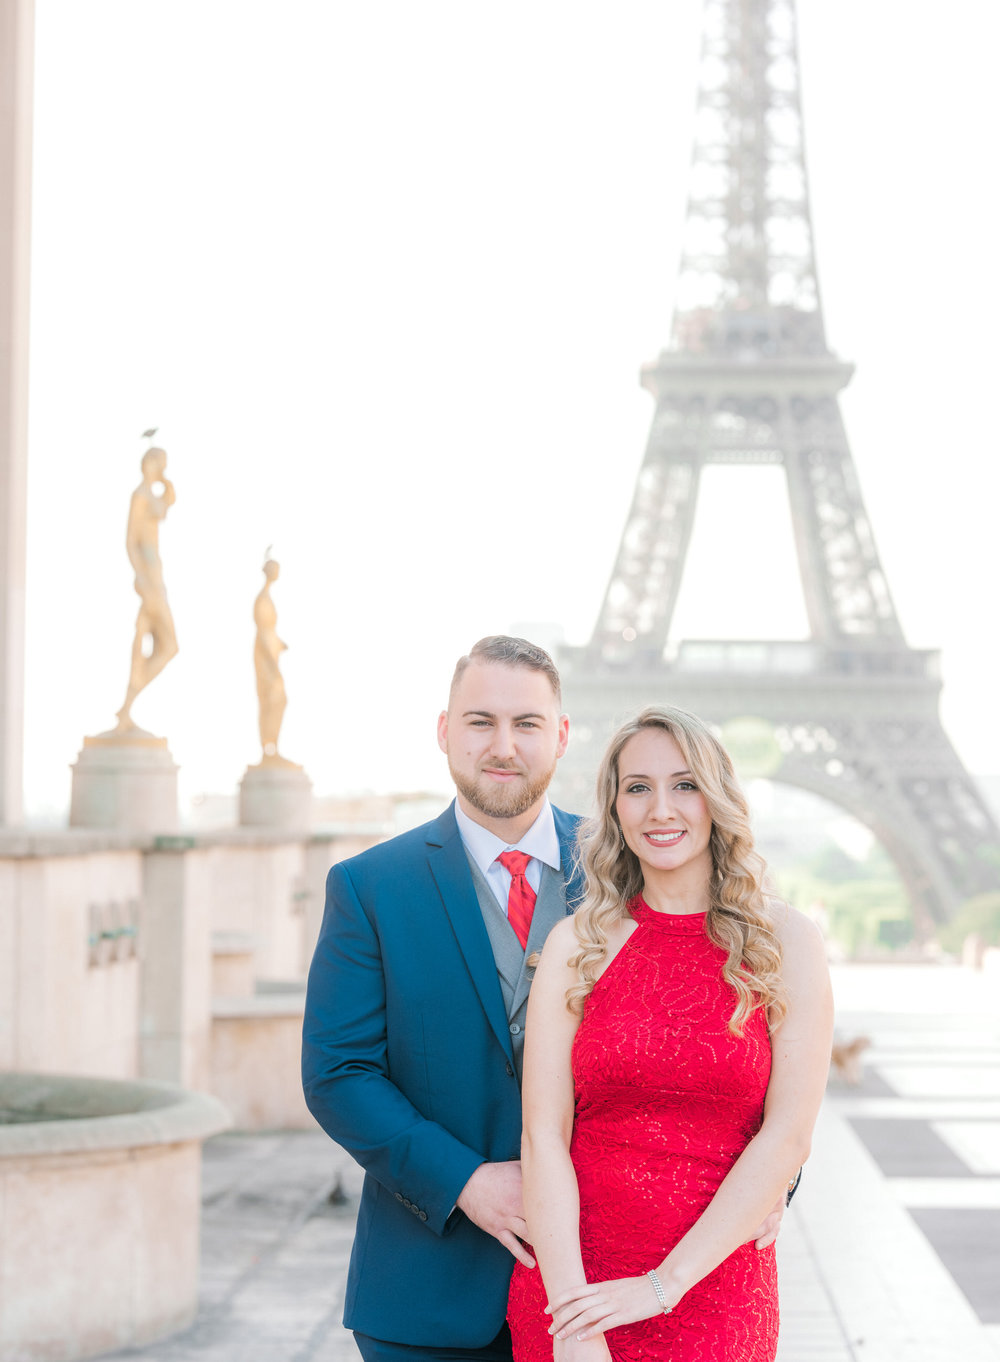 romantic engagement photo shoot in paris france at eiffel tower